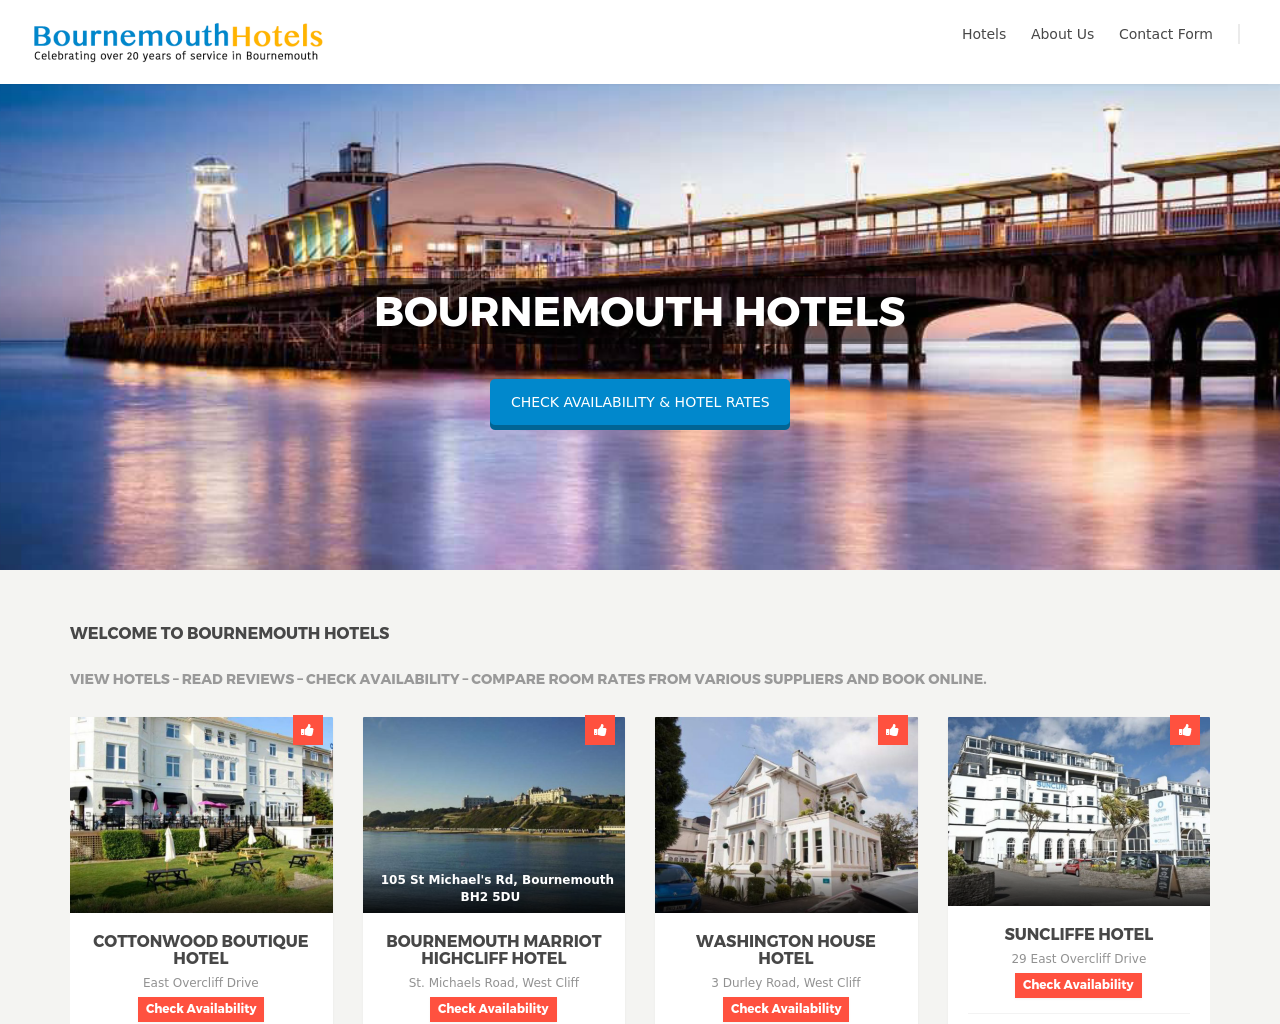 Bournemouth-Hotels-Advertising-Reviews-Pricing